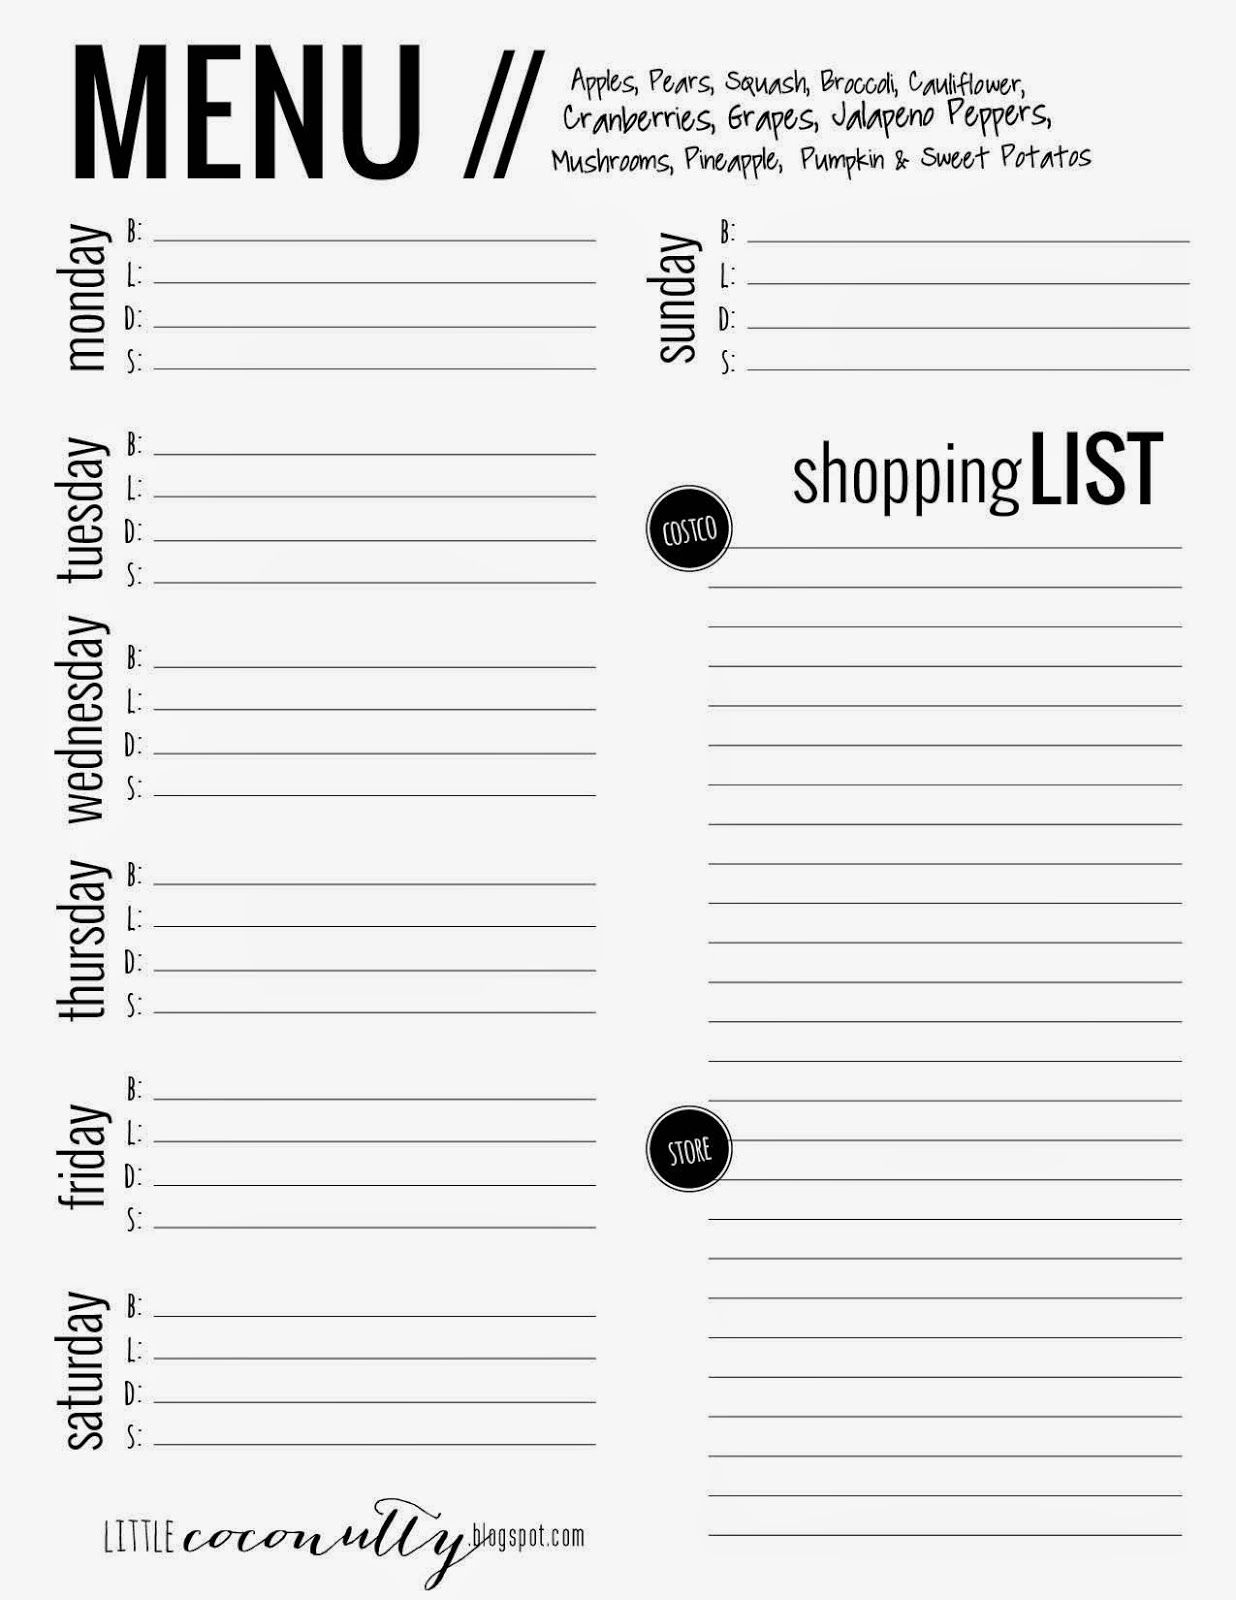 Little Coconutty Free Menu Planner Printable